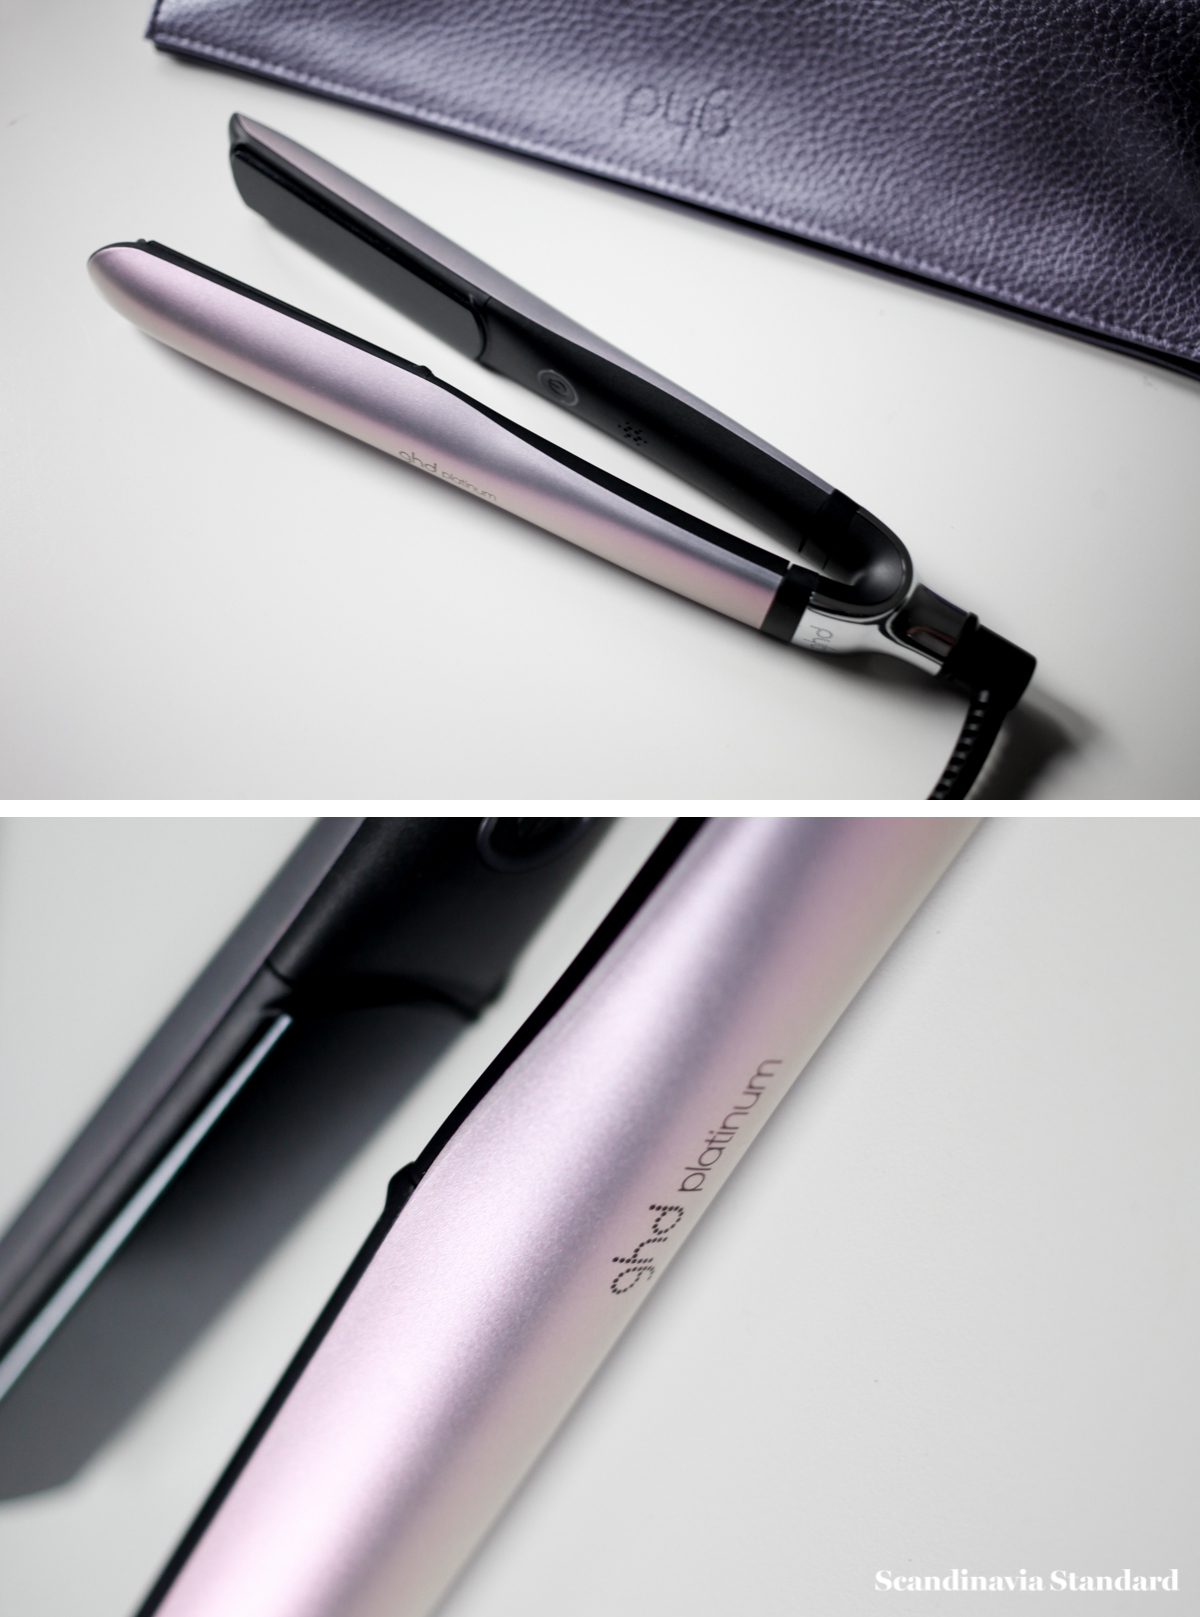 GHD Azores Collection | Scandianvia Stadnard